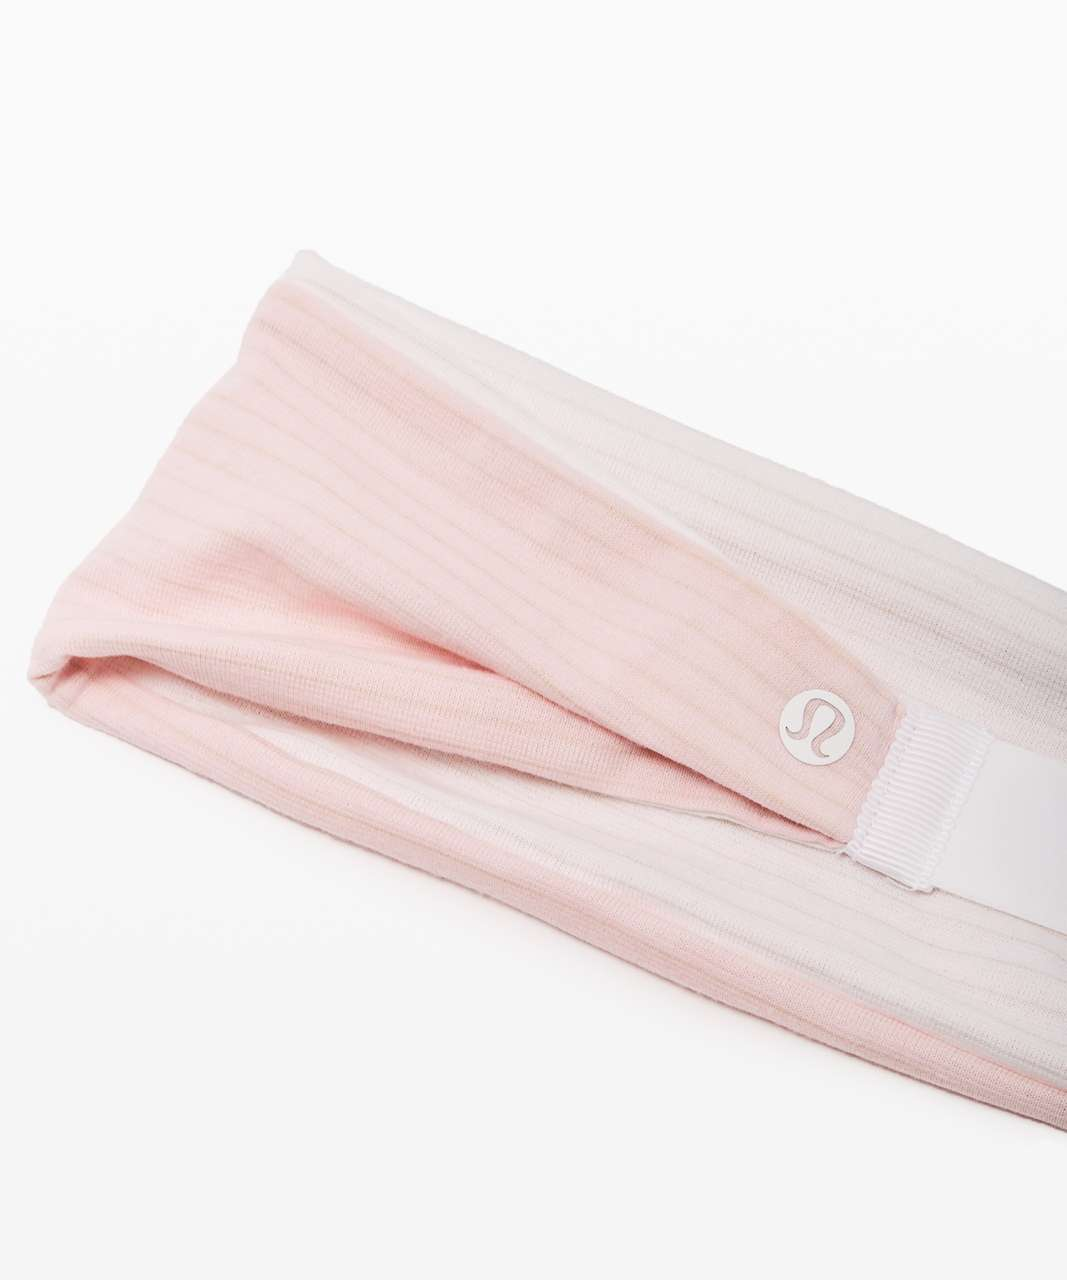 Lululemon Fringe Fighter Headband - Heathered Dusty Pink / Heathered White